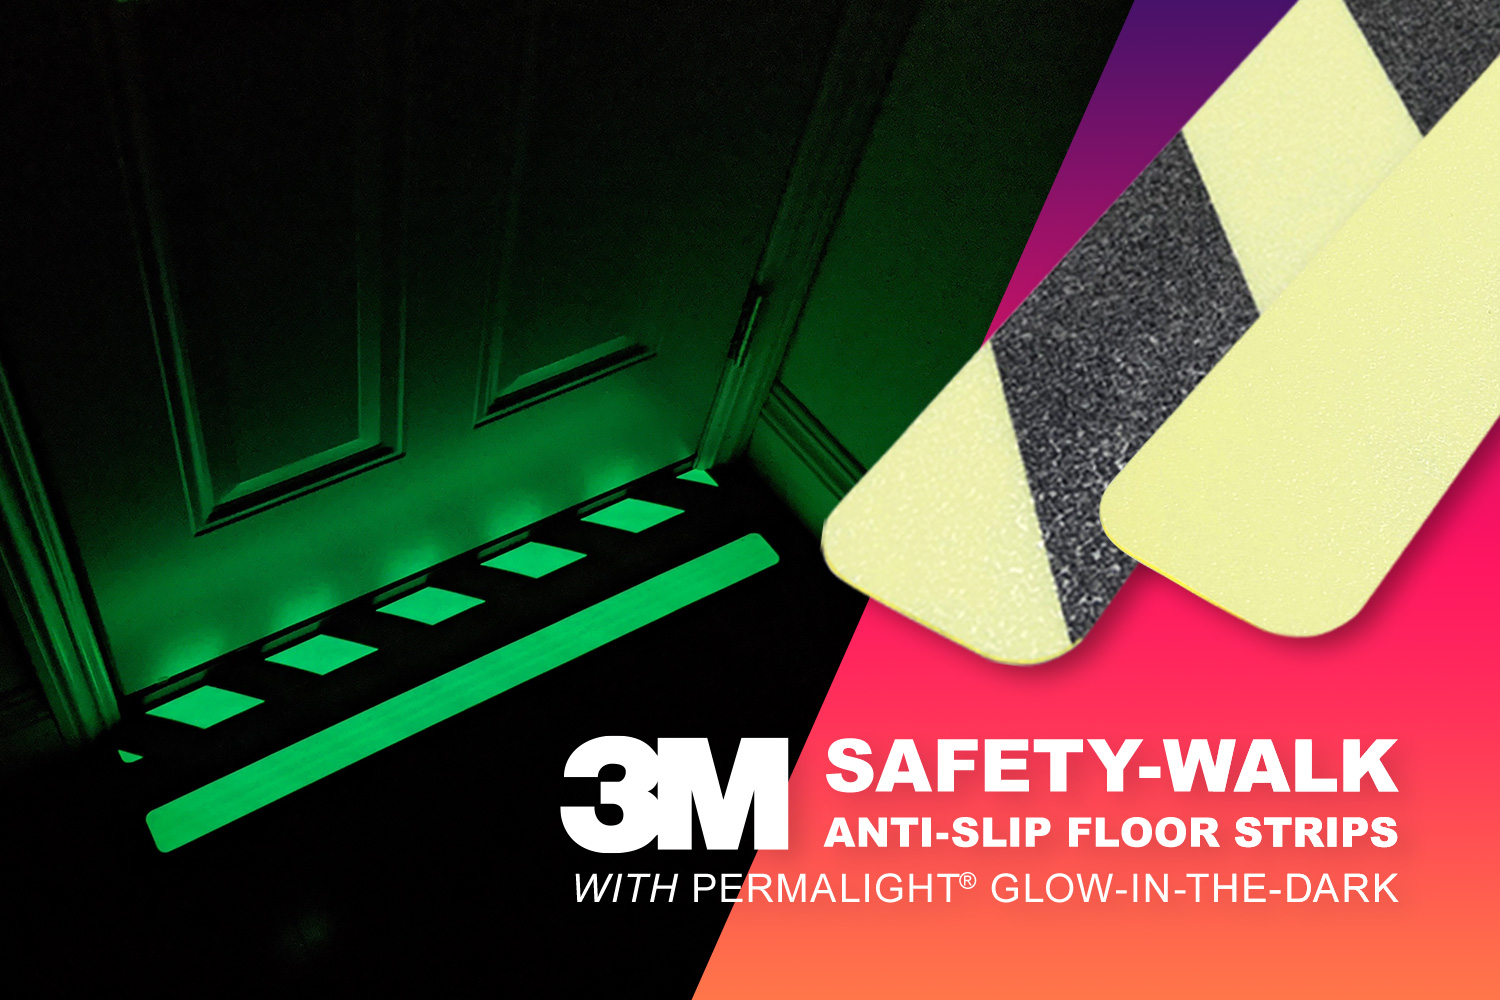 Home Safety with PERMALIGHT® & 3M